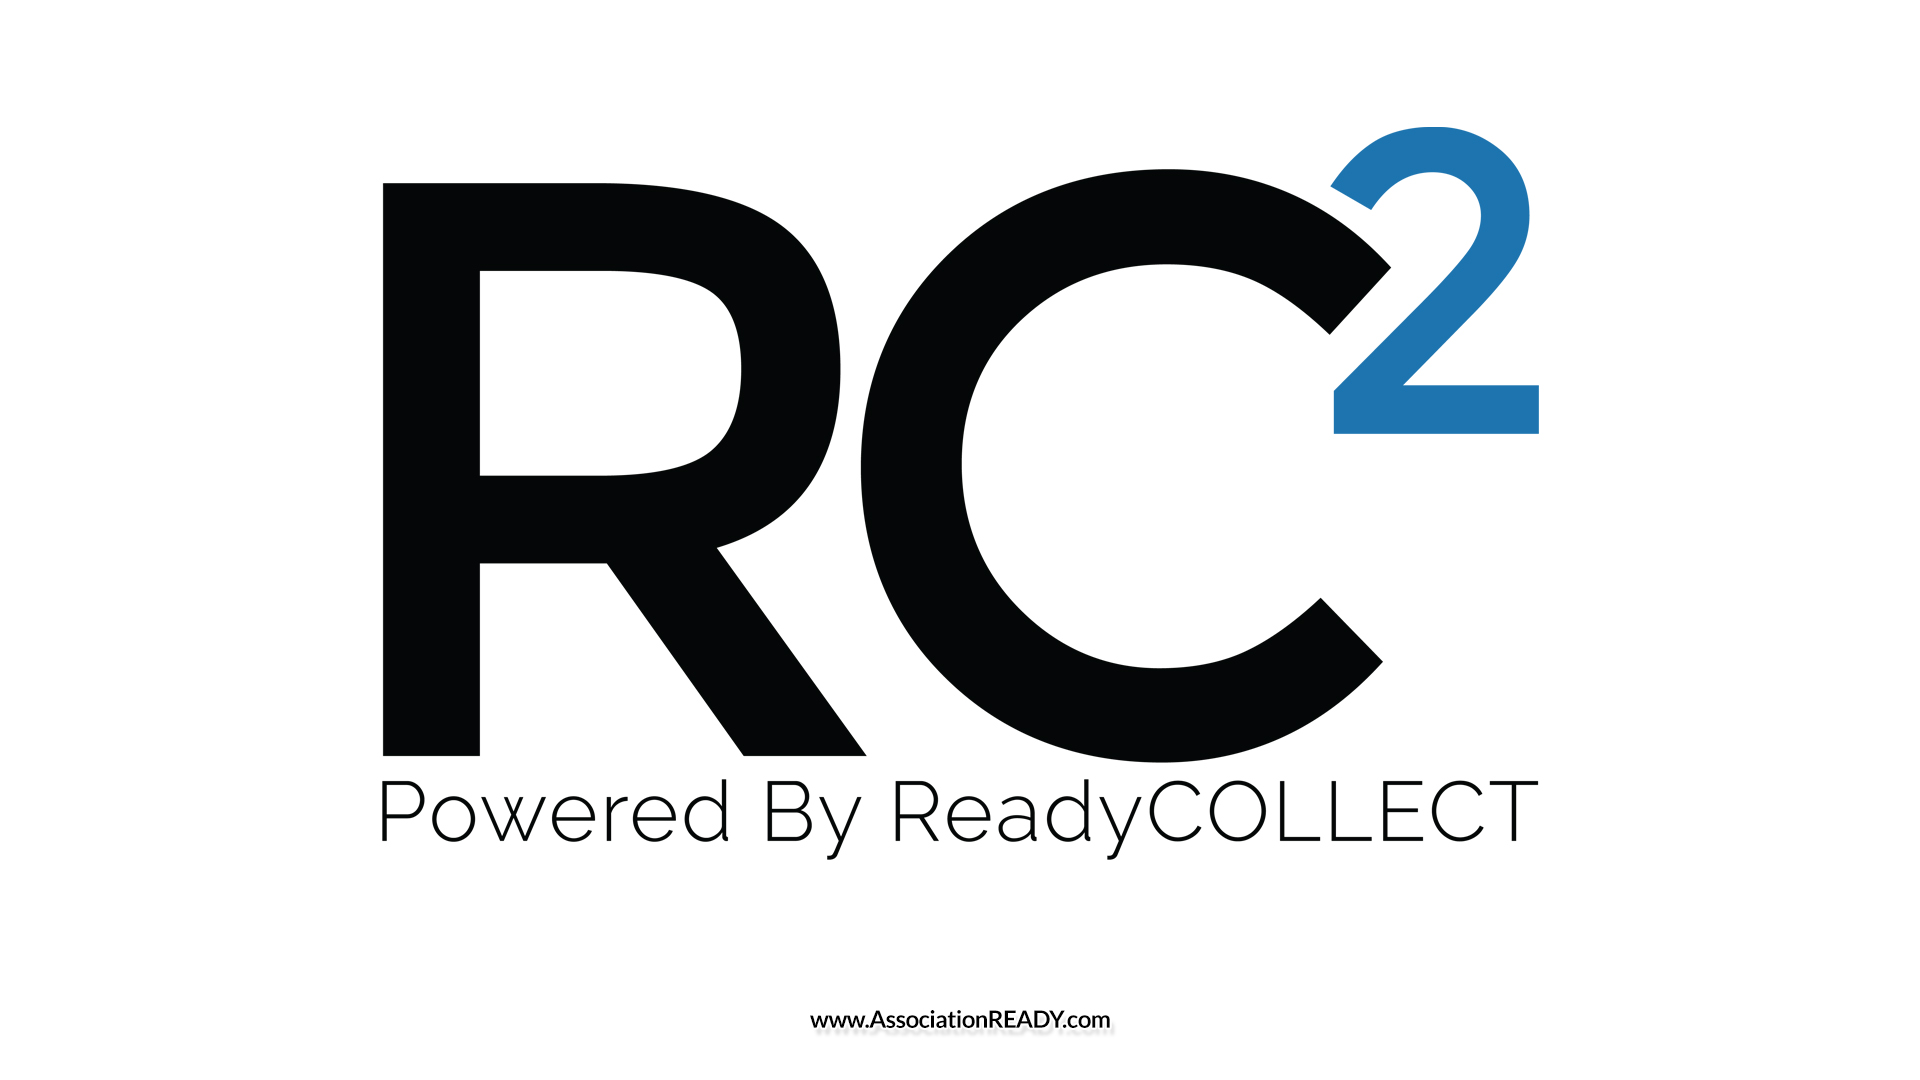 RC2 ReadyCOLLECT White Desktop WallPaper - Click to Download Larger Version